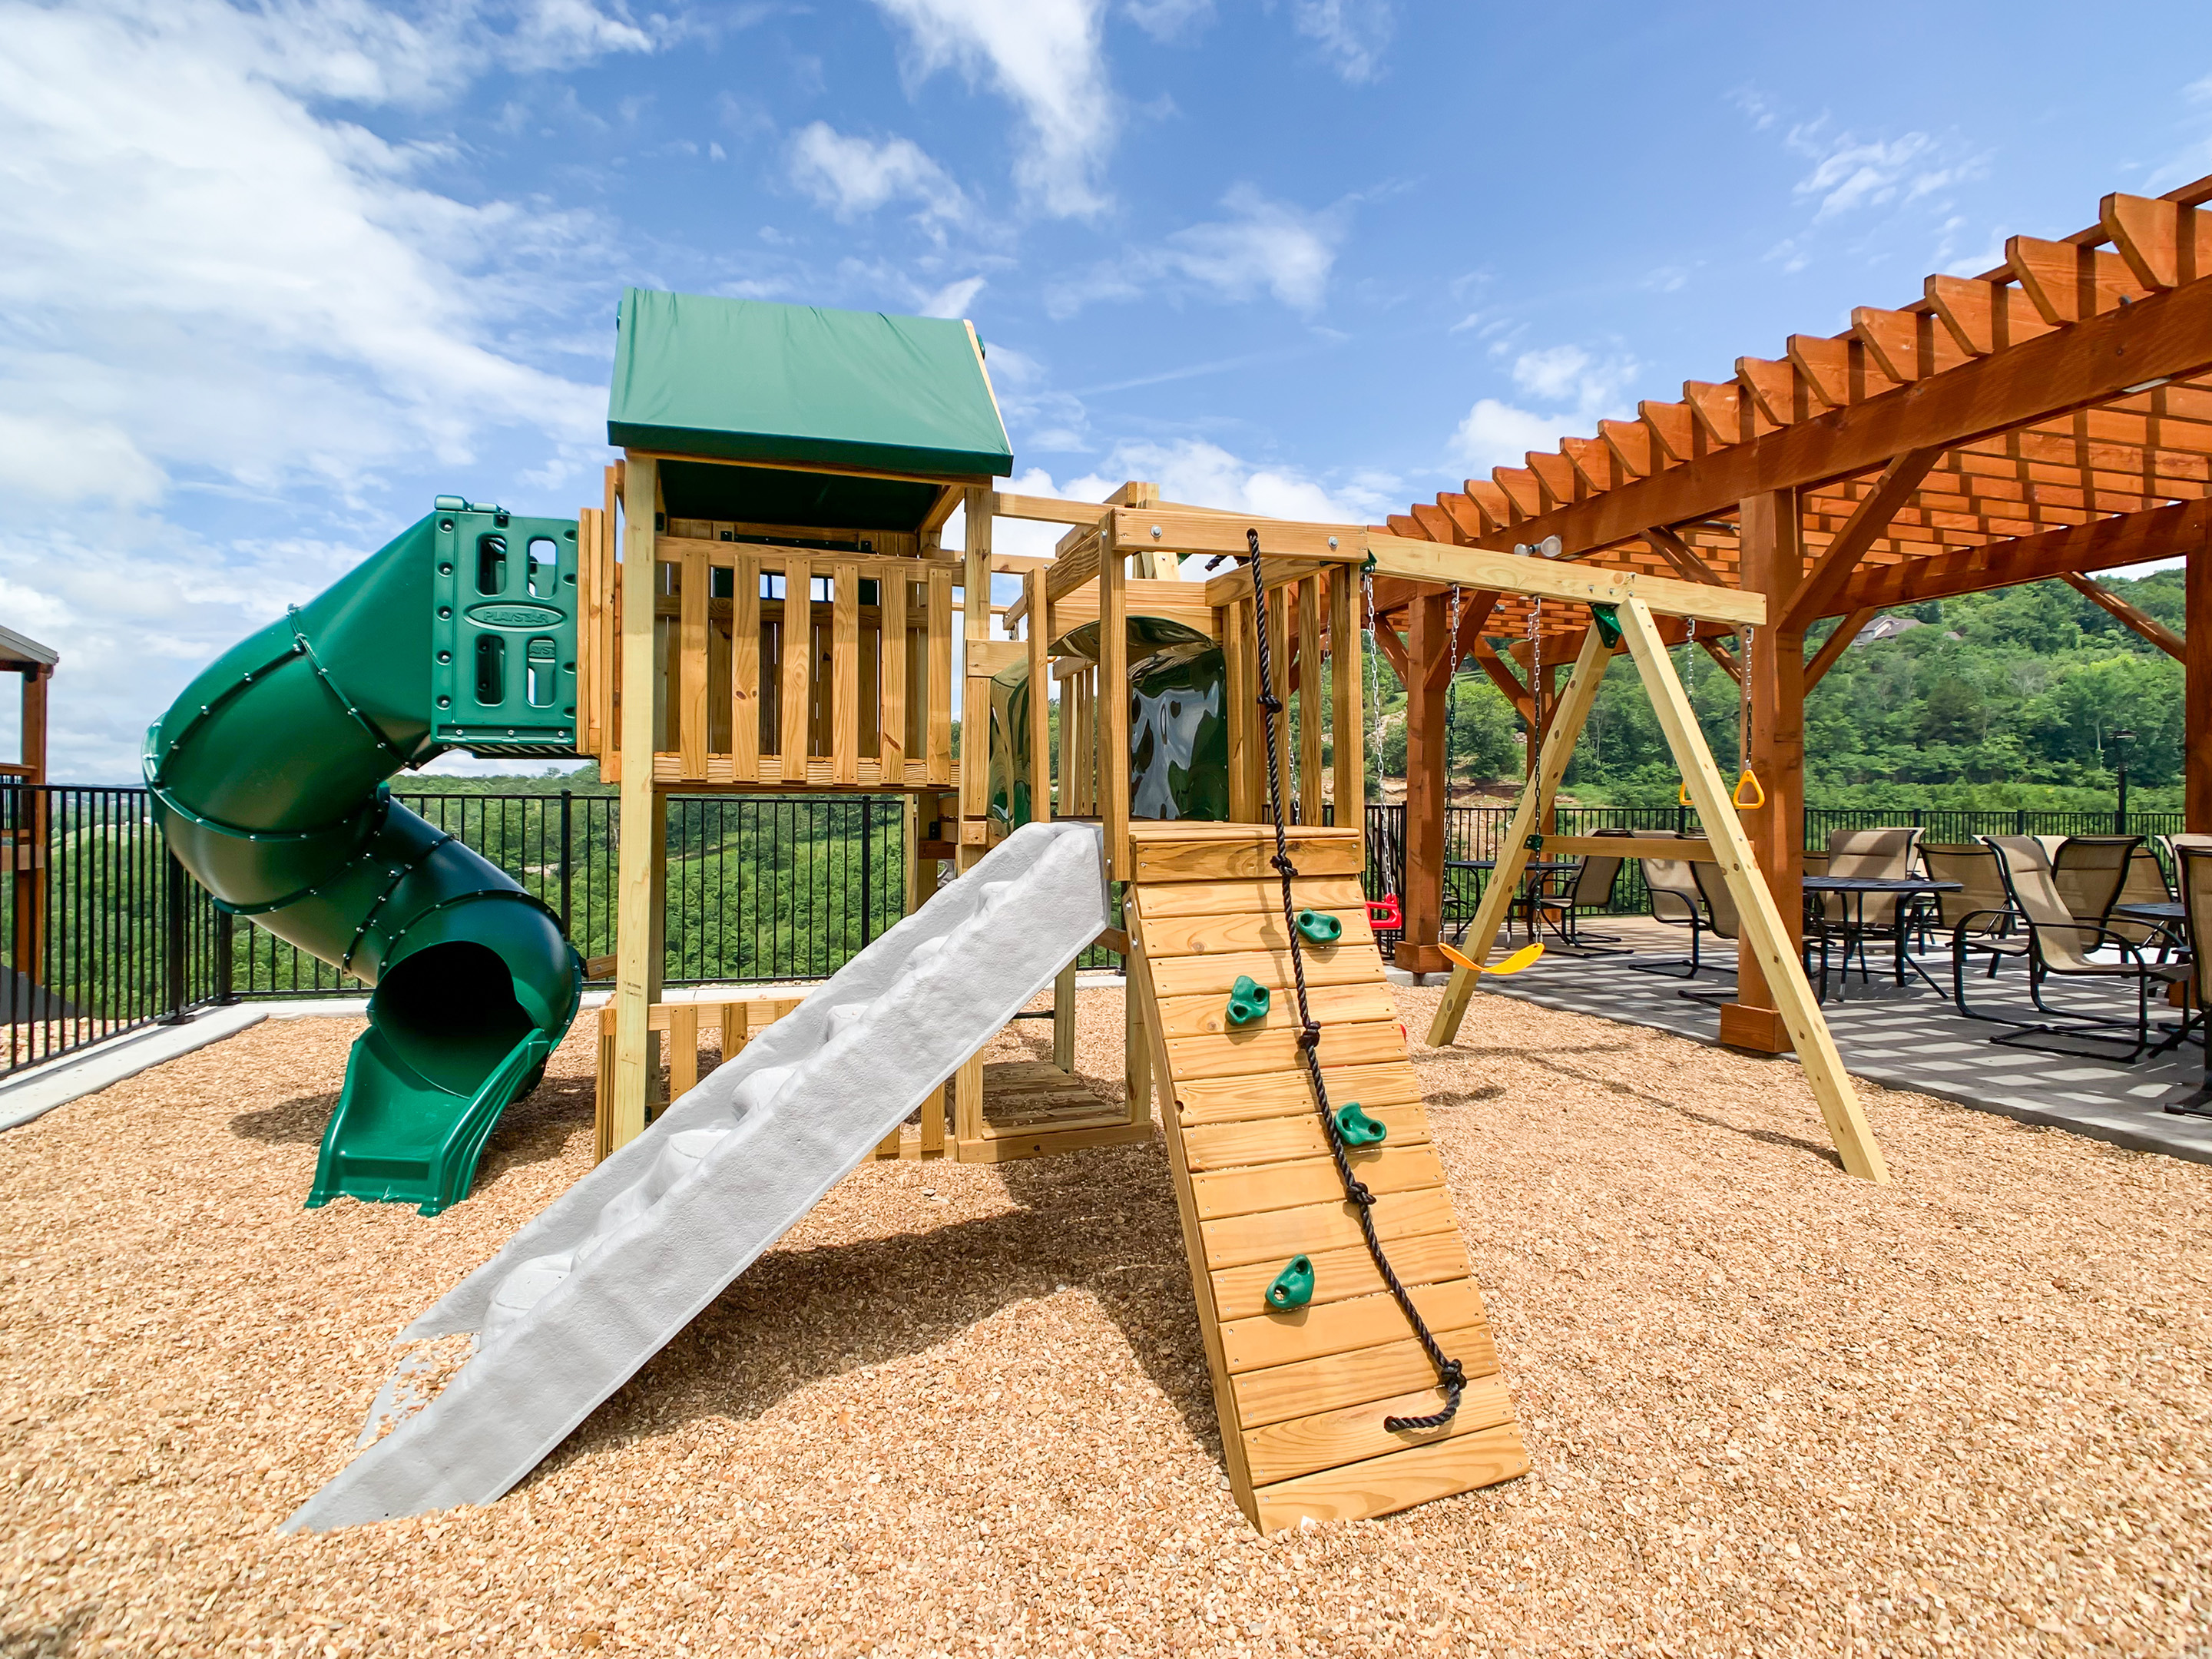 Chateau Cove Playground, Table Rock Lake, Branson, Missouri